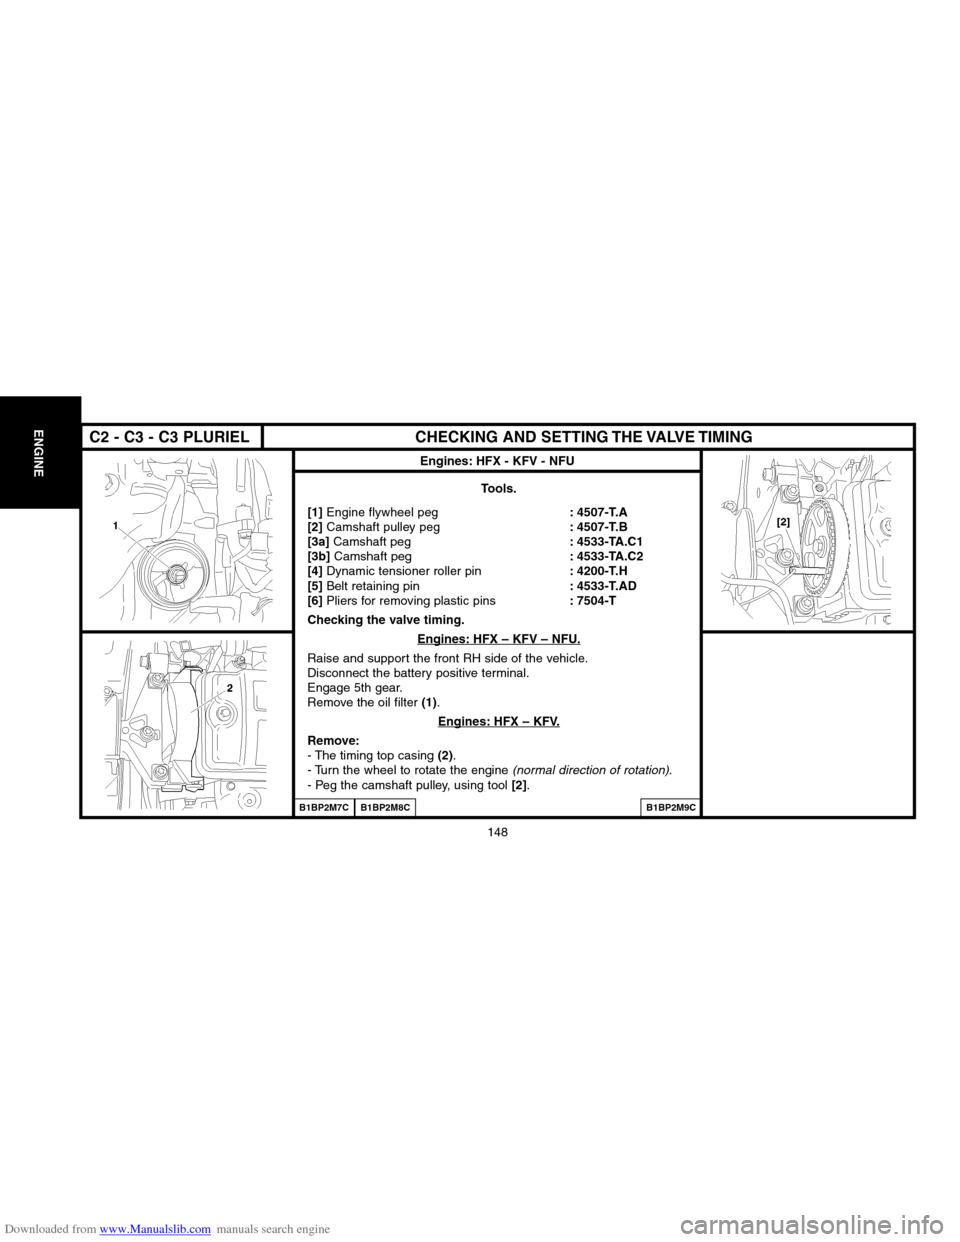 citroen c2 1 4 hdi wiring diagram wiring library. Black Bedroom Furniture Sets. Home Design Ideas